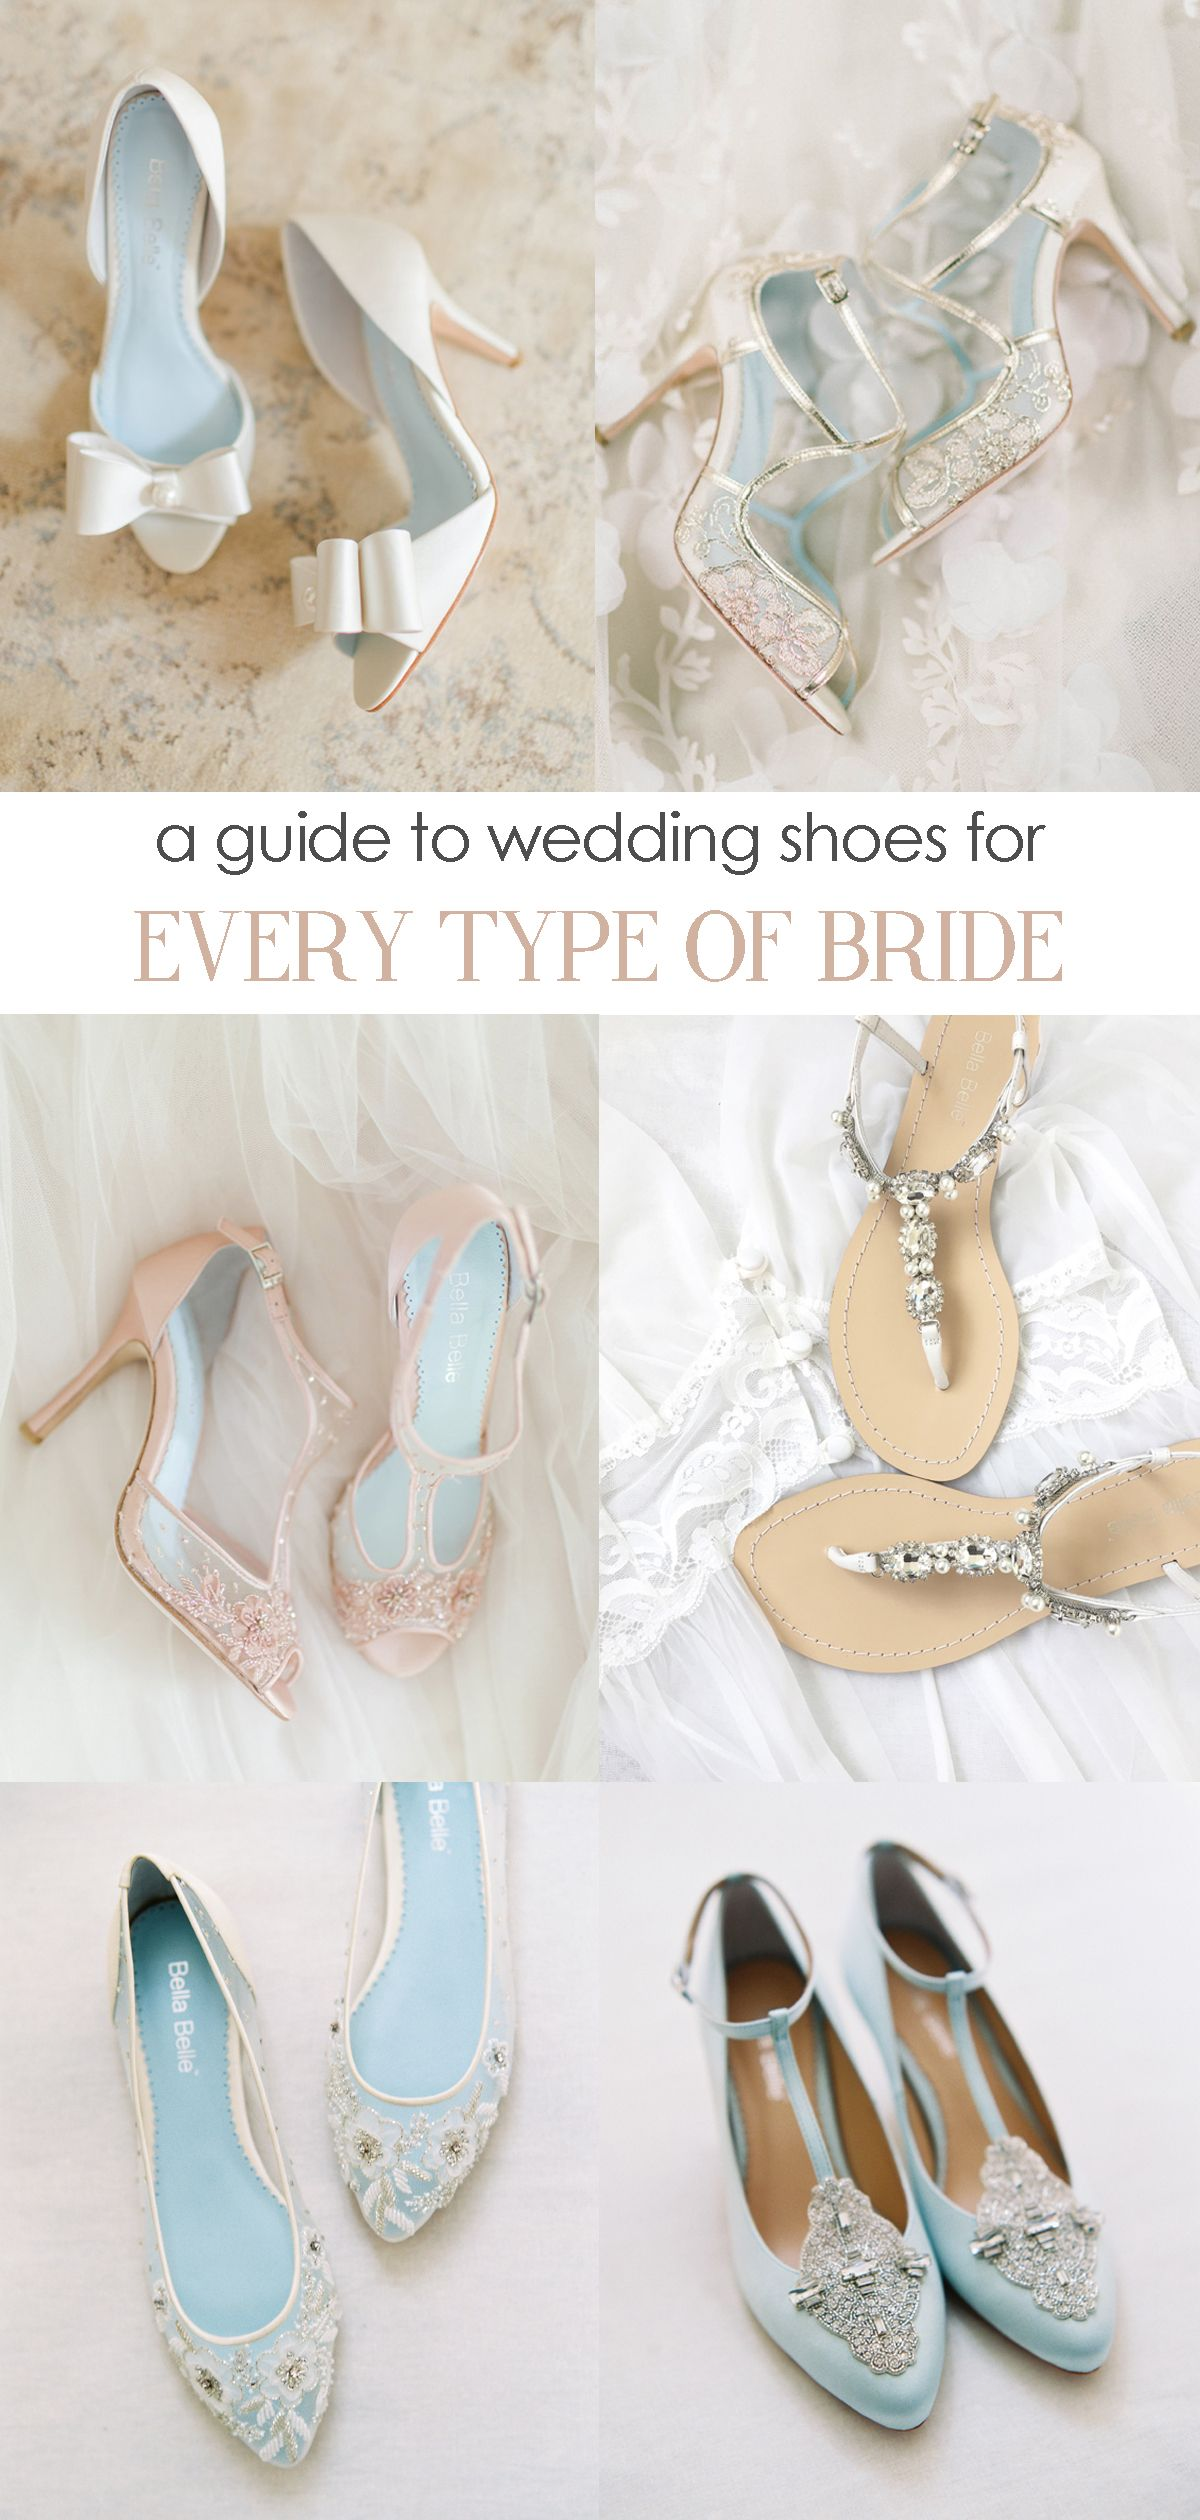 cd7a1af23 Wedding Shoes for Every Bride. A guide to choose the perfect bridal shoes  for your big day. by Bella Belle.  weddingshoes